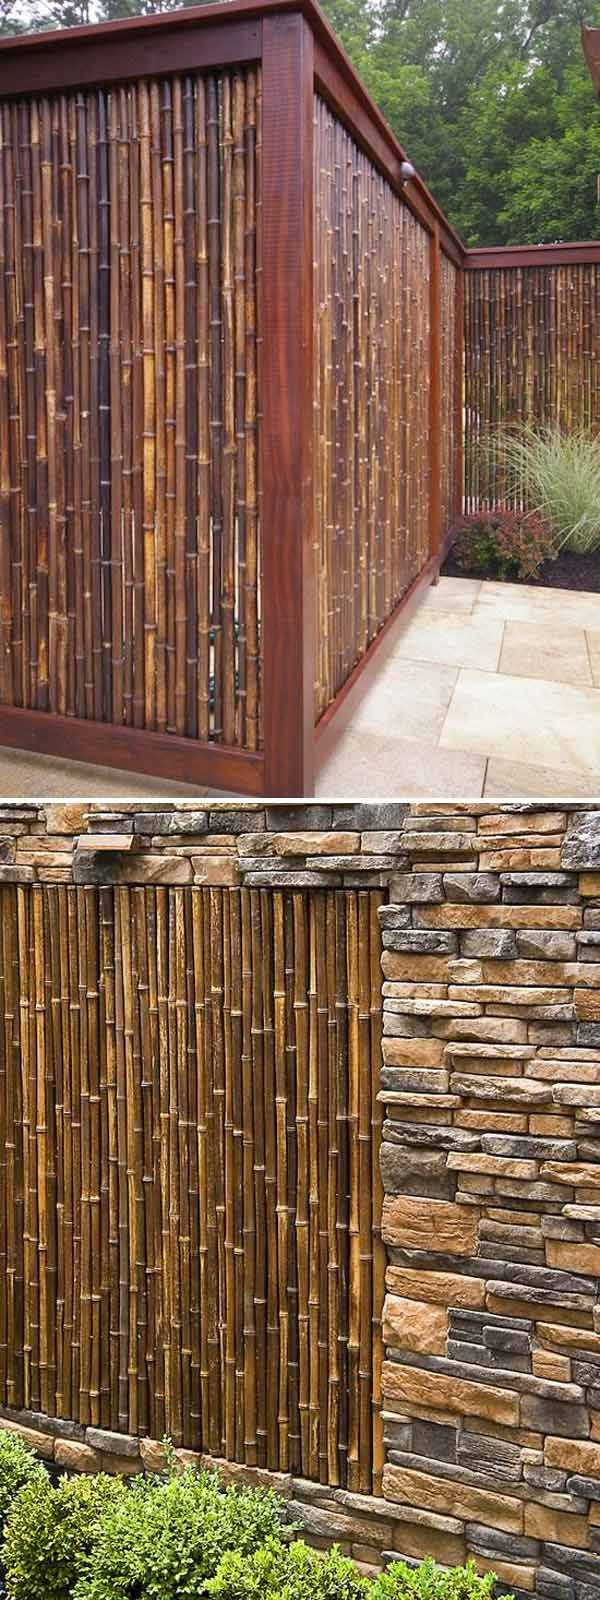 the 25+ best bamboo ideas on pinterest | bamboo ideas, bamboo